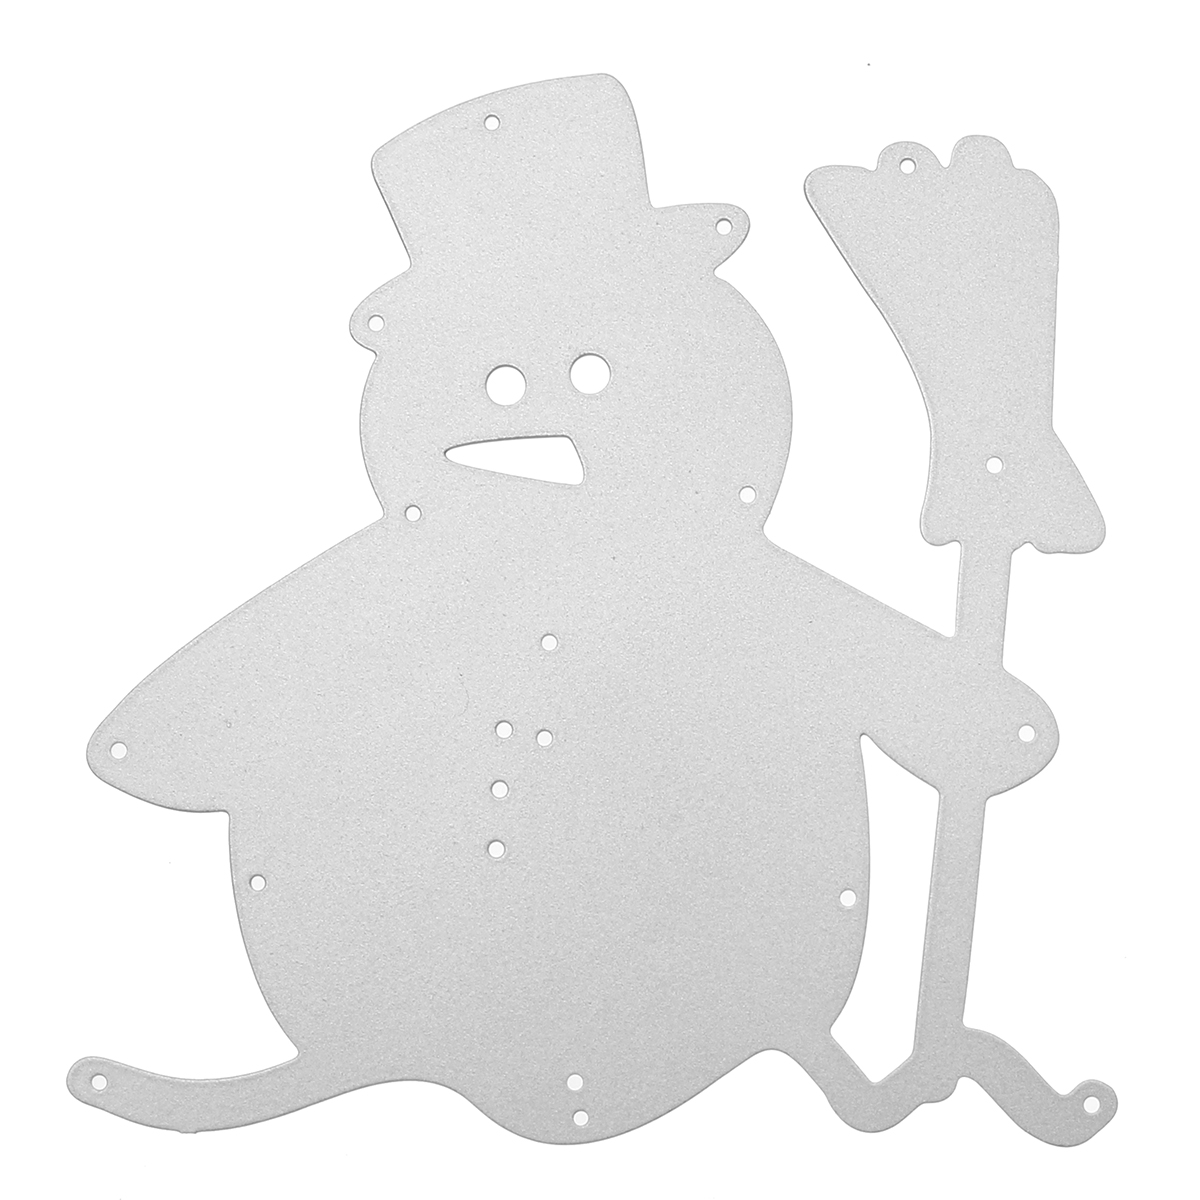 Snowman Broom Christmas Metal DIY Cutting Dies Scrapbook Photo Album Paper Card Embossing Craft